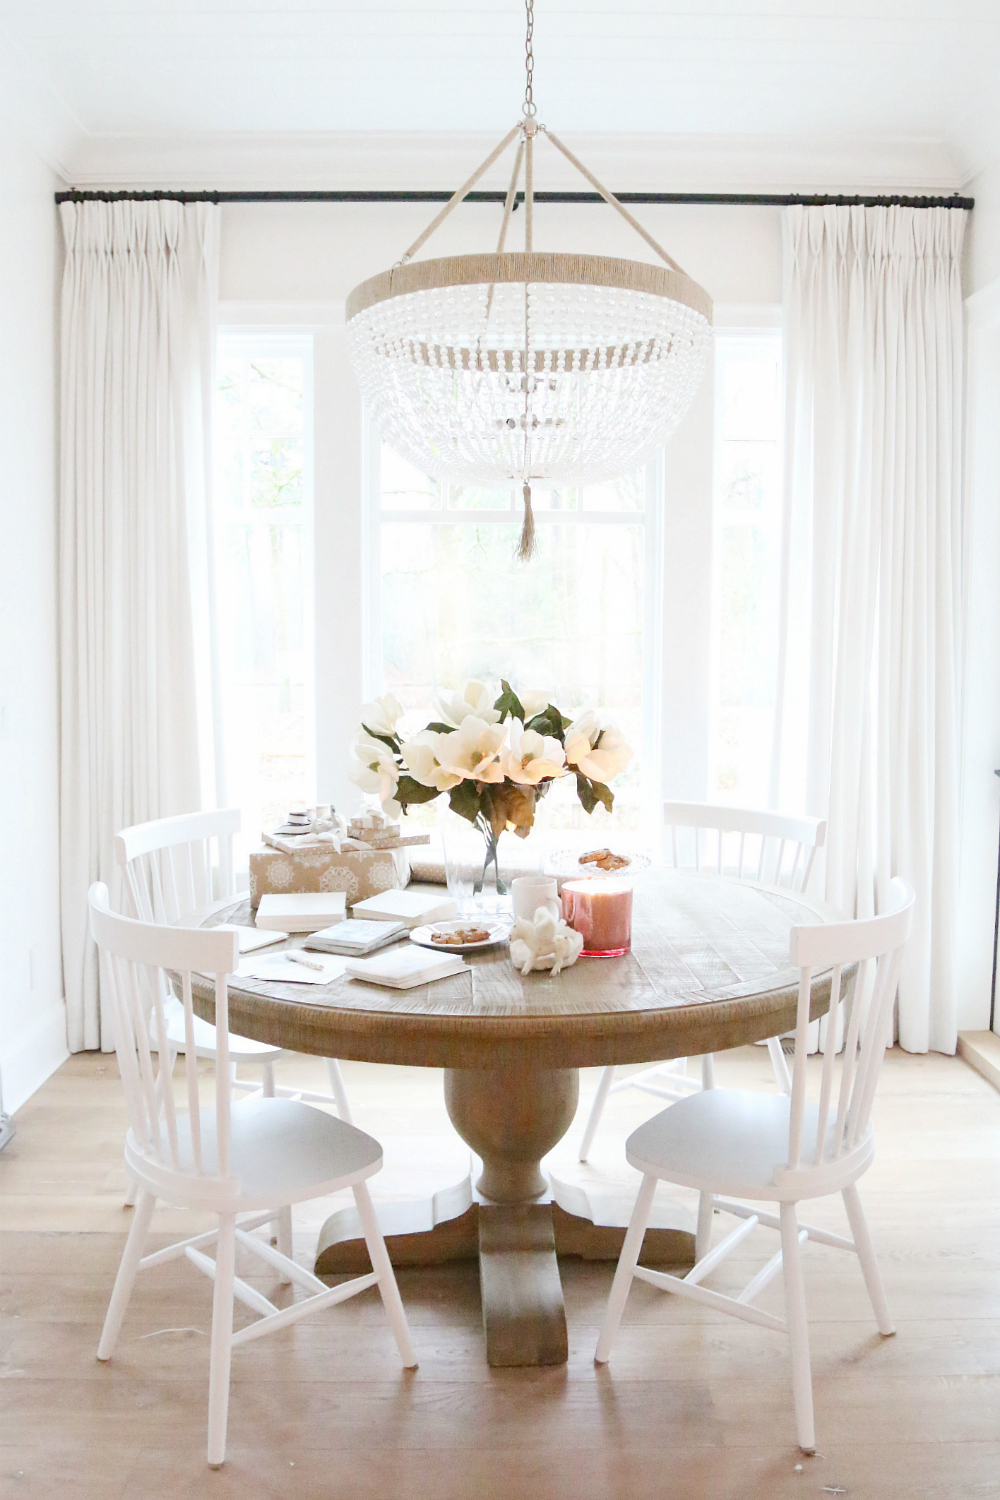 Restoration hardware french urn pedestal round dining table copy cat chic - Dining room table chandeliers ...